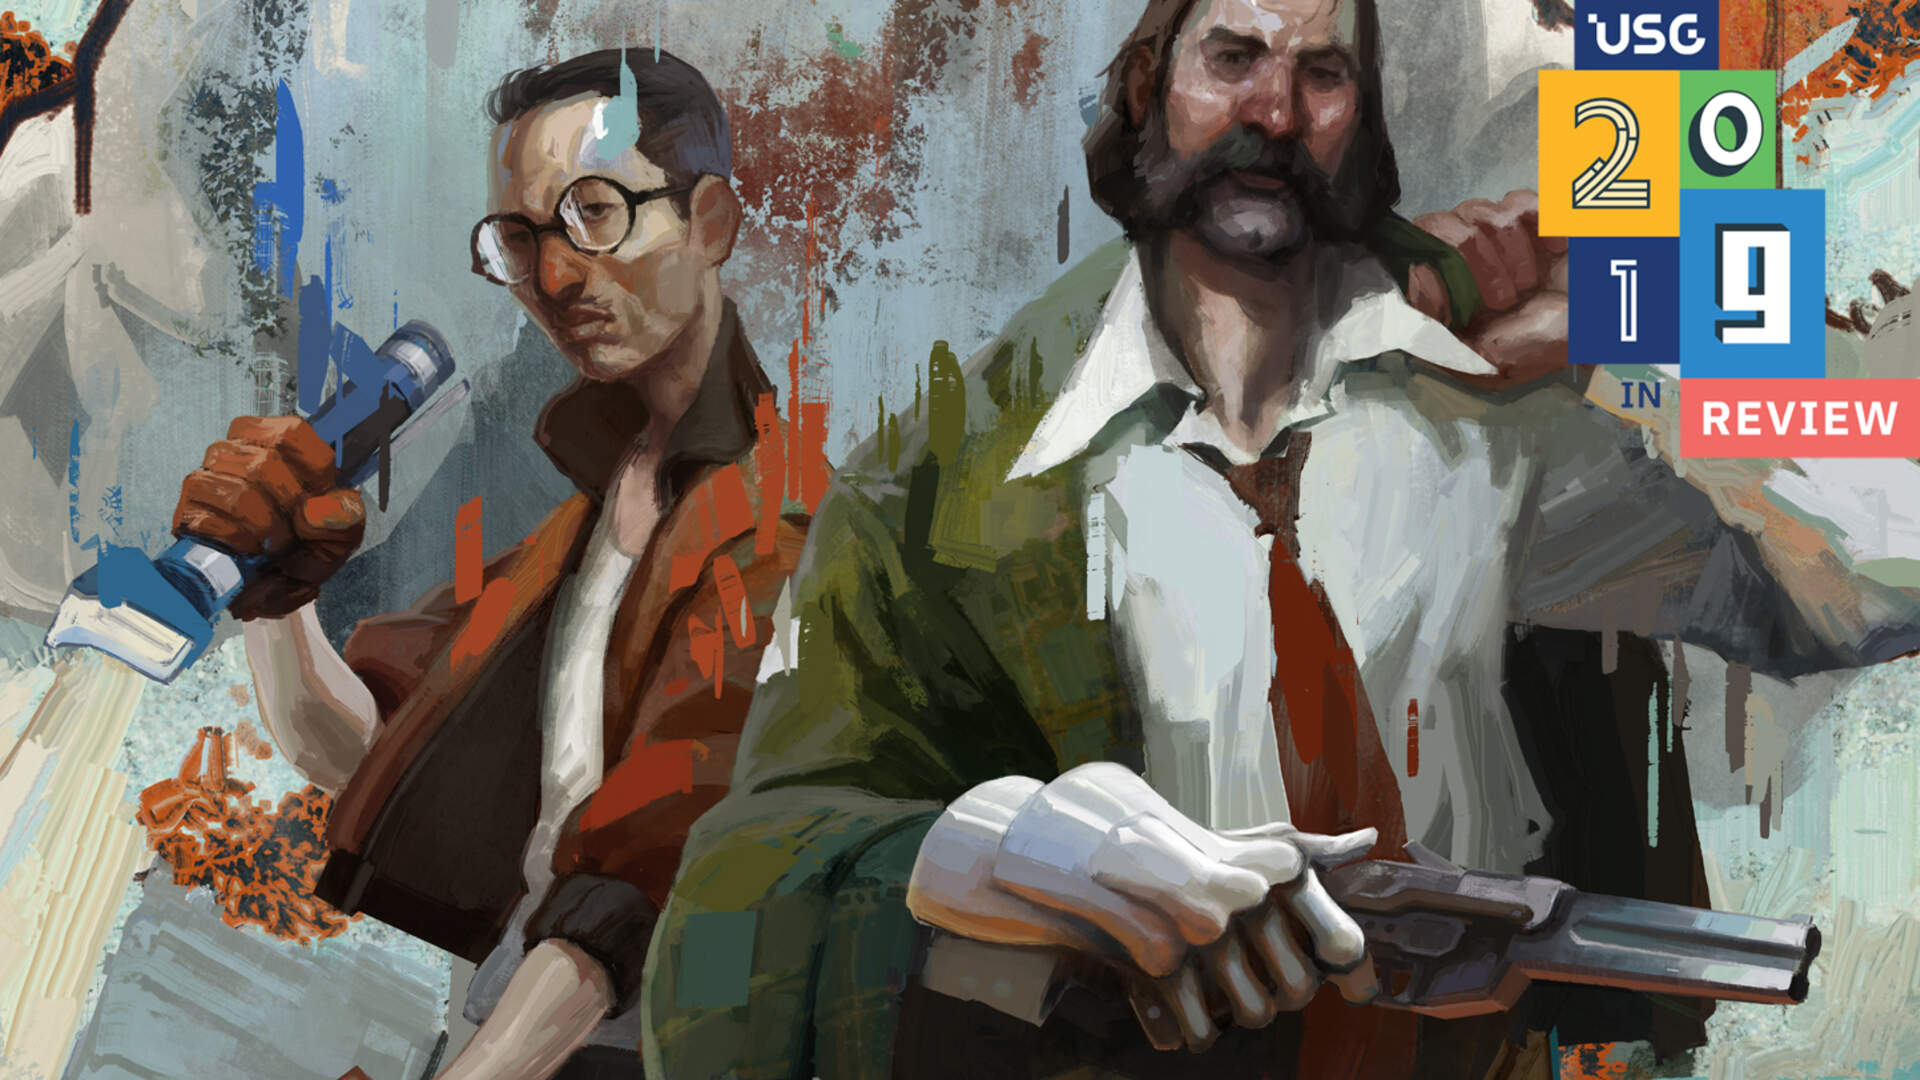 USG Game of The Year 2019: Disco Elysium Let Us Be Human, No Matter the Cost